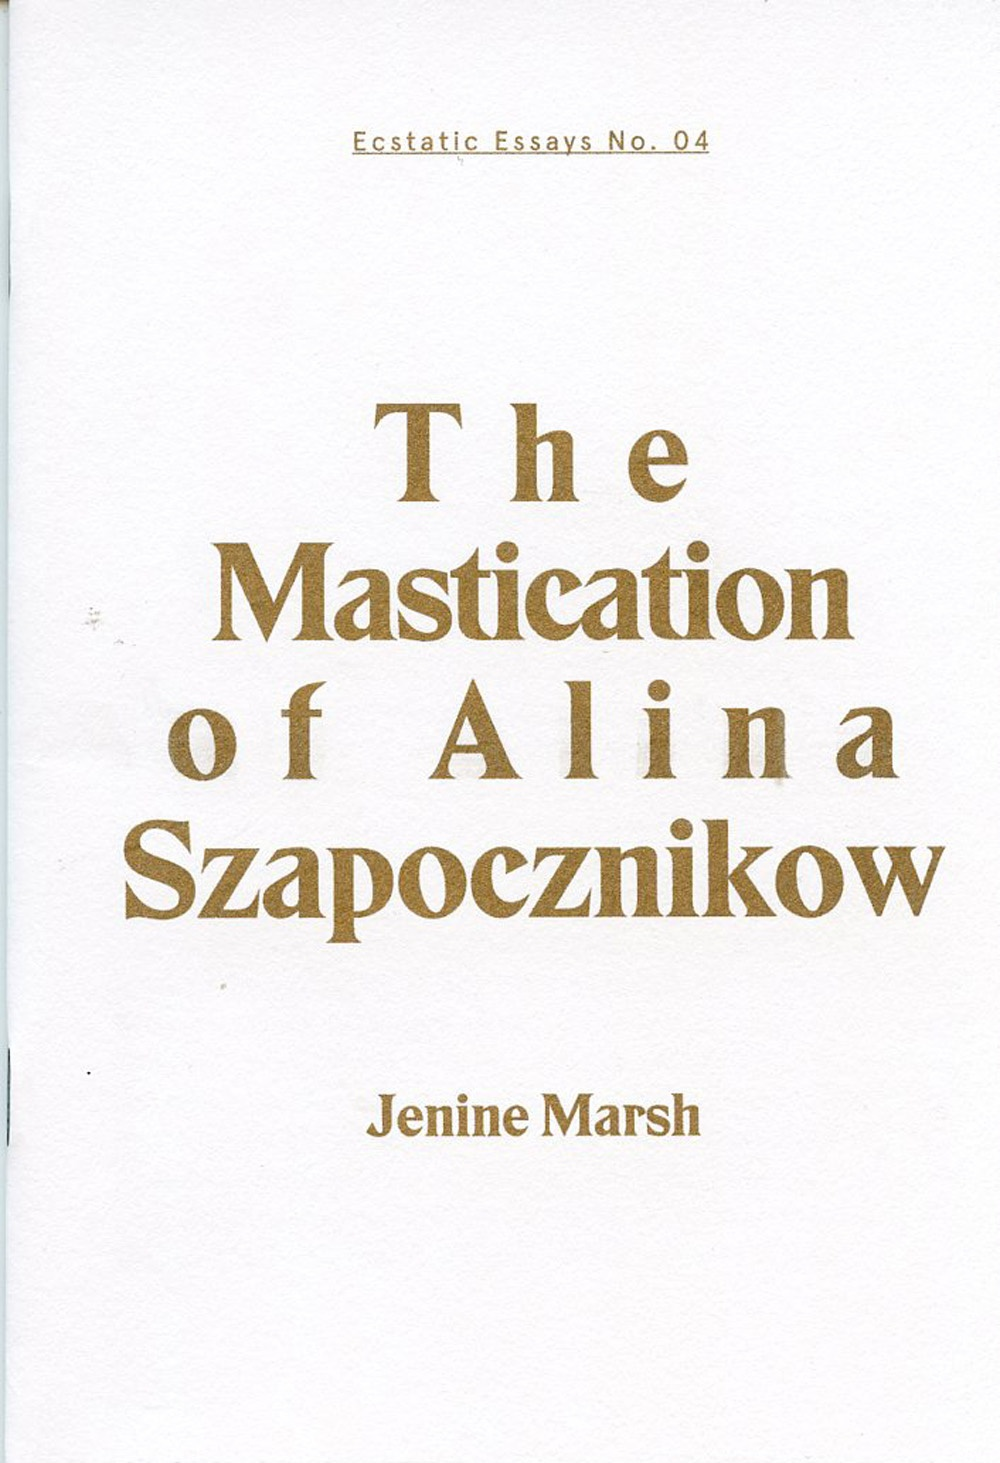 The Mastication of Alina